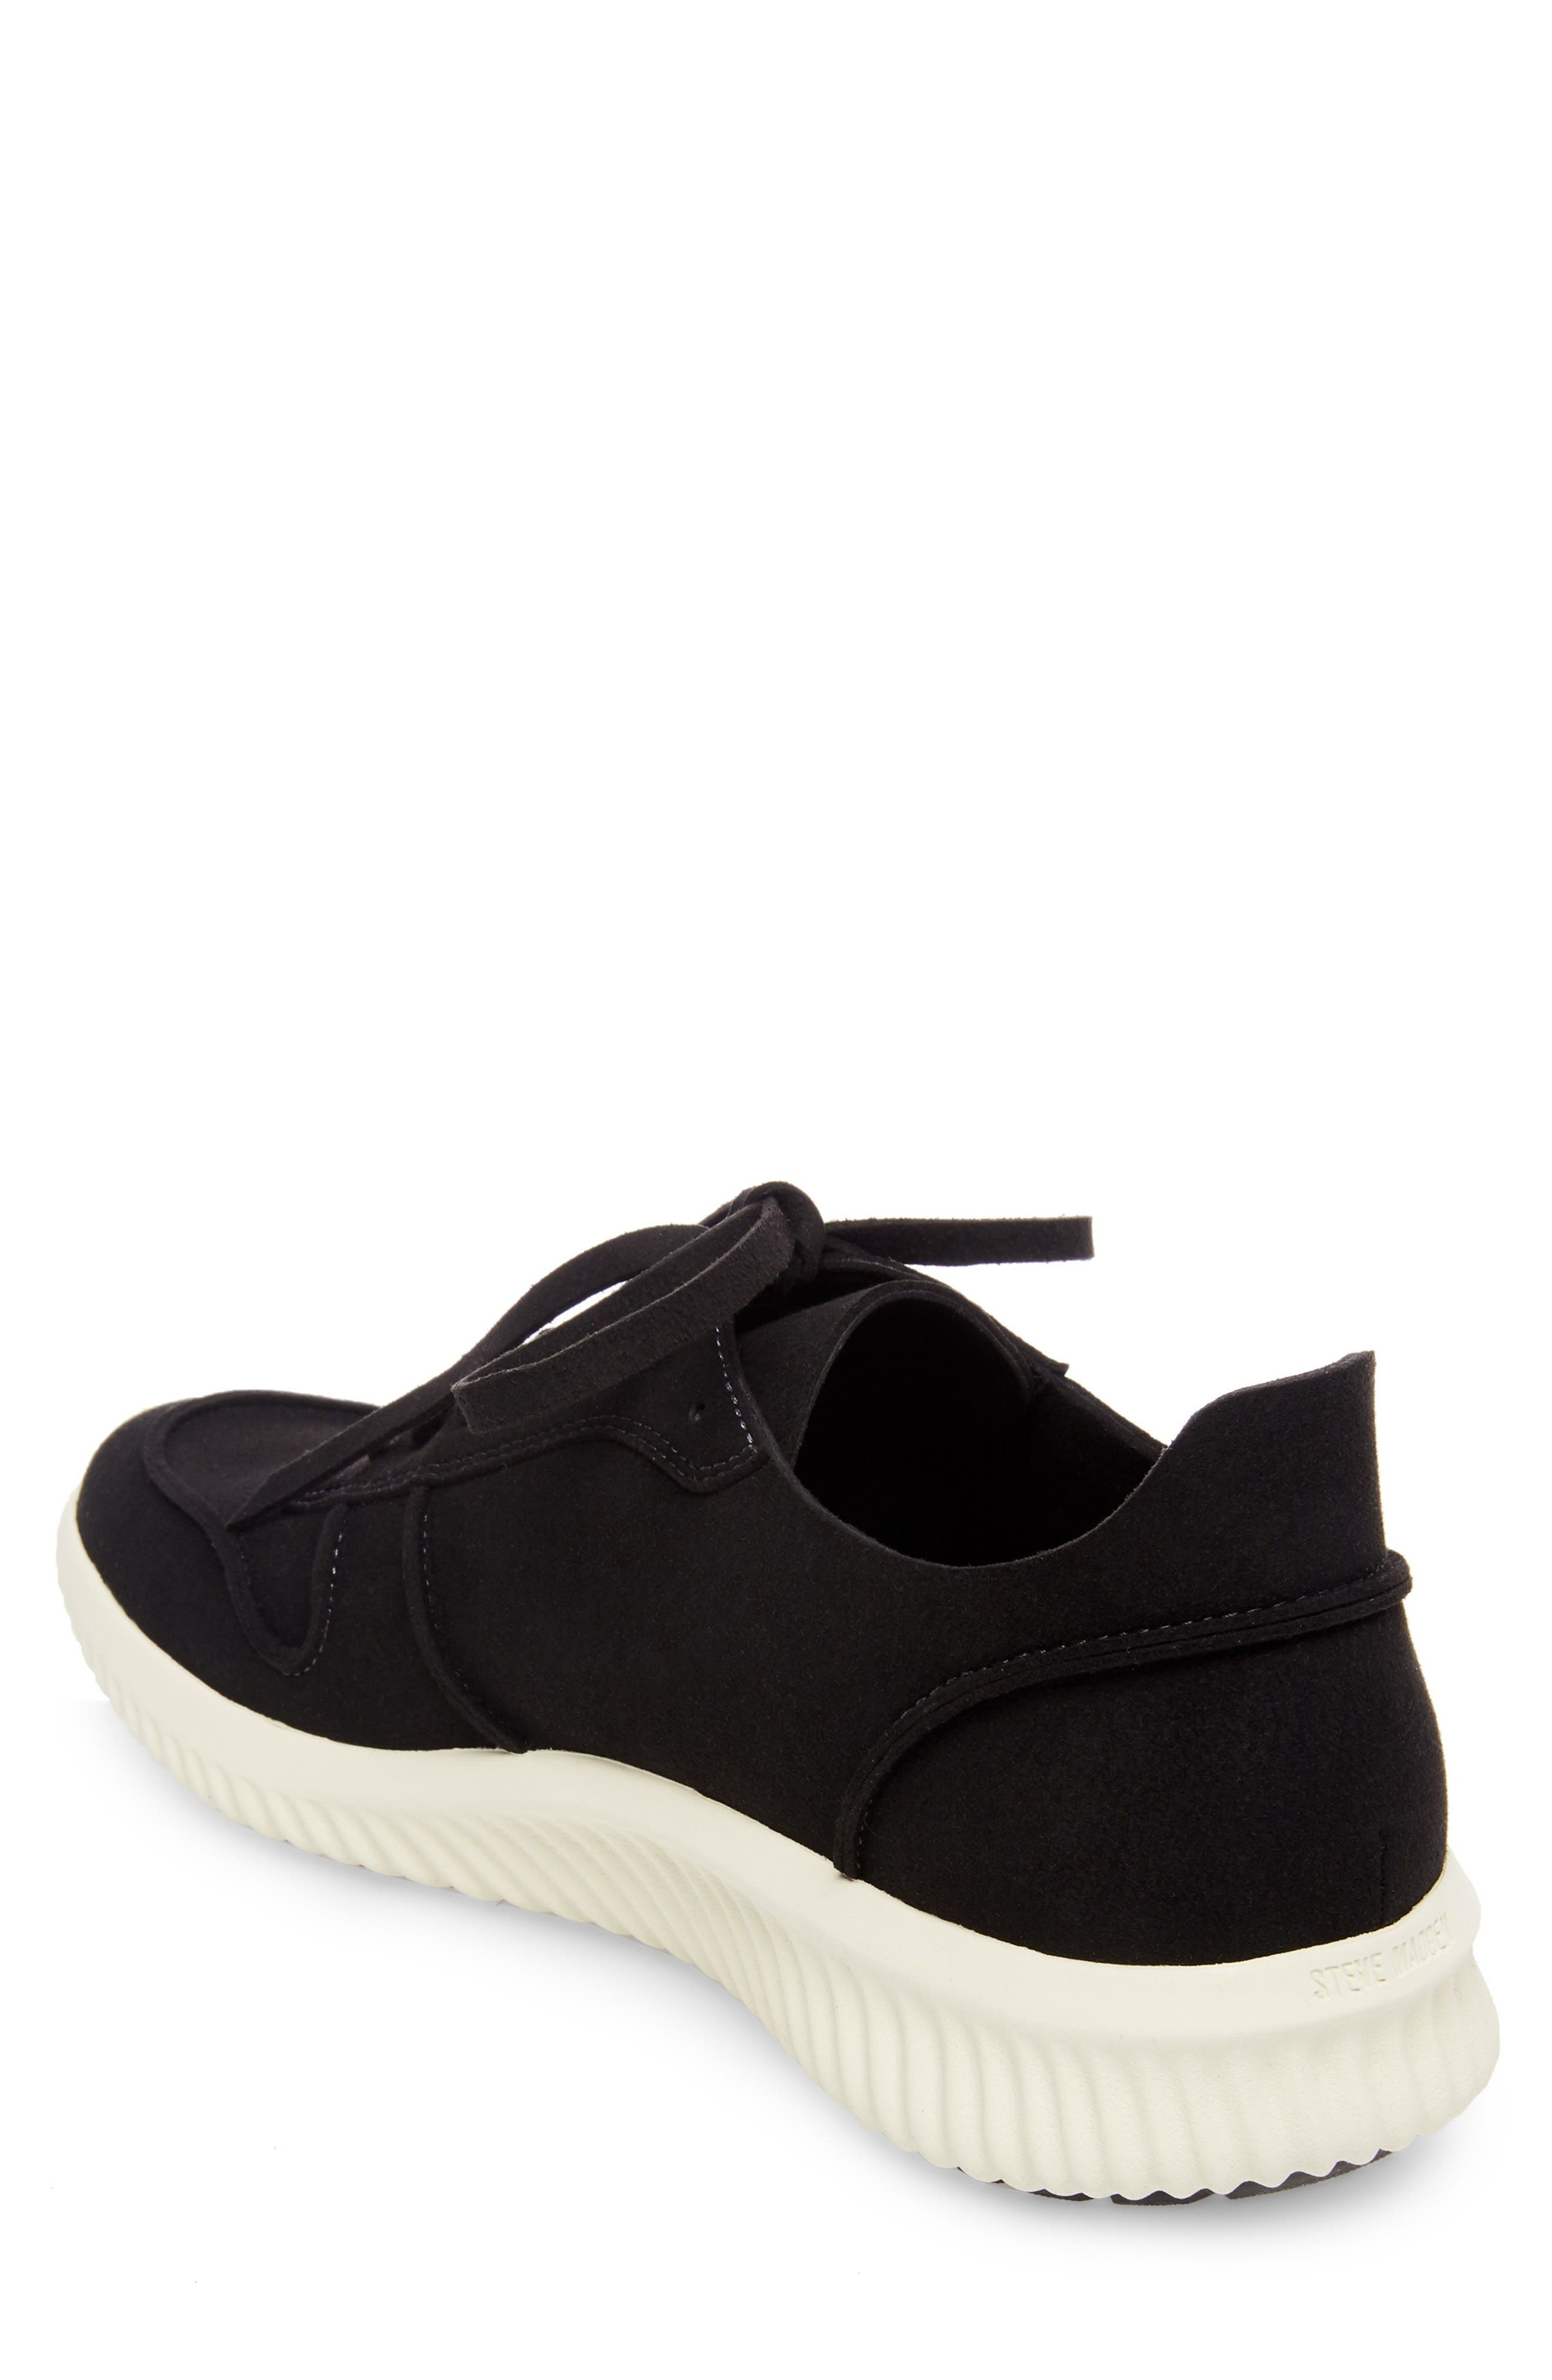 Rolf Low Top Sneaker,                             Alternate thumbnail 2, color,                             BLACK LEATHER